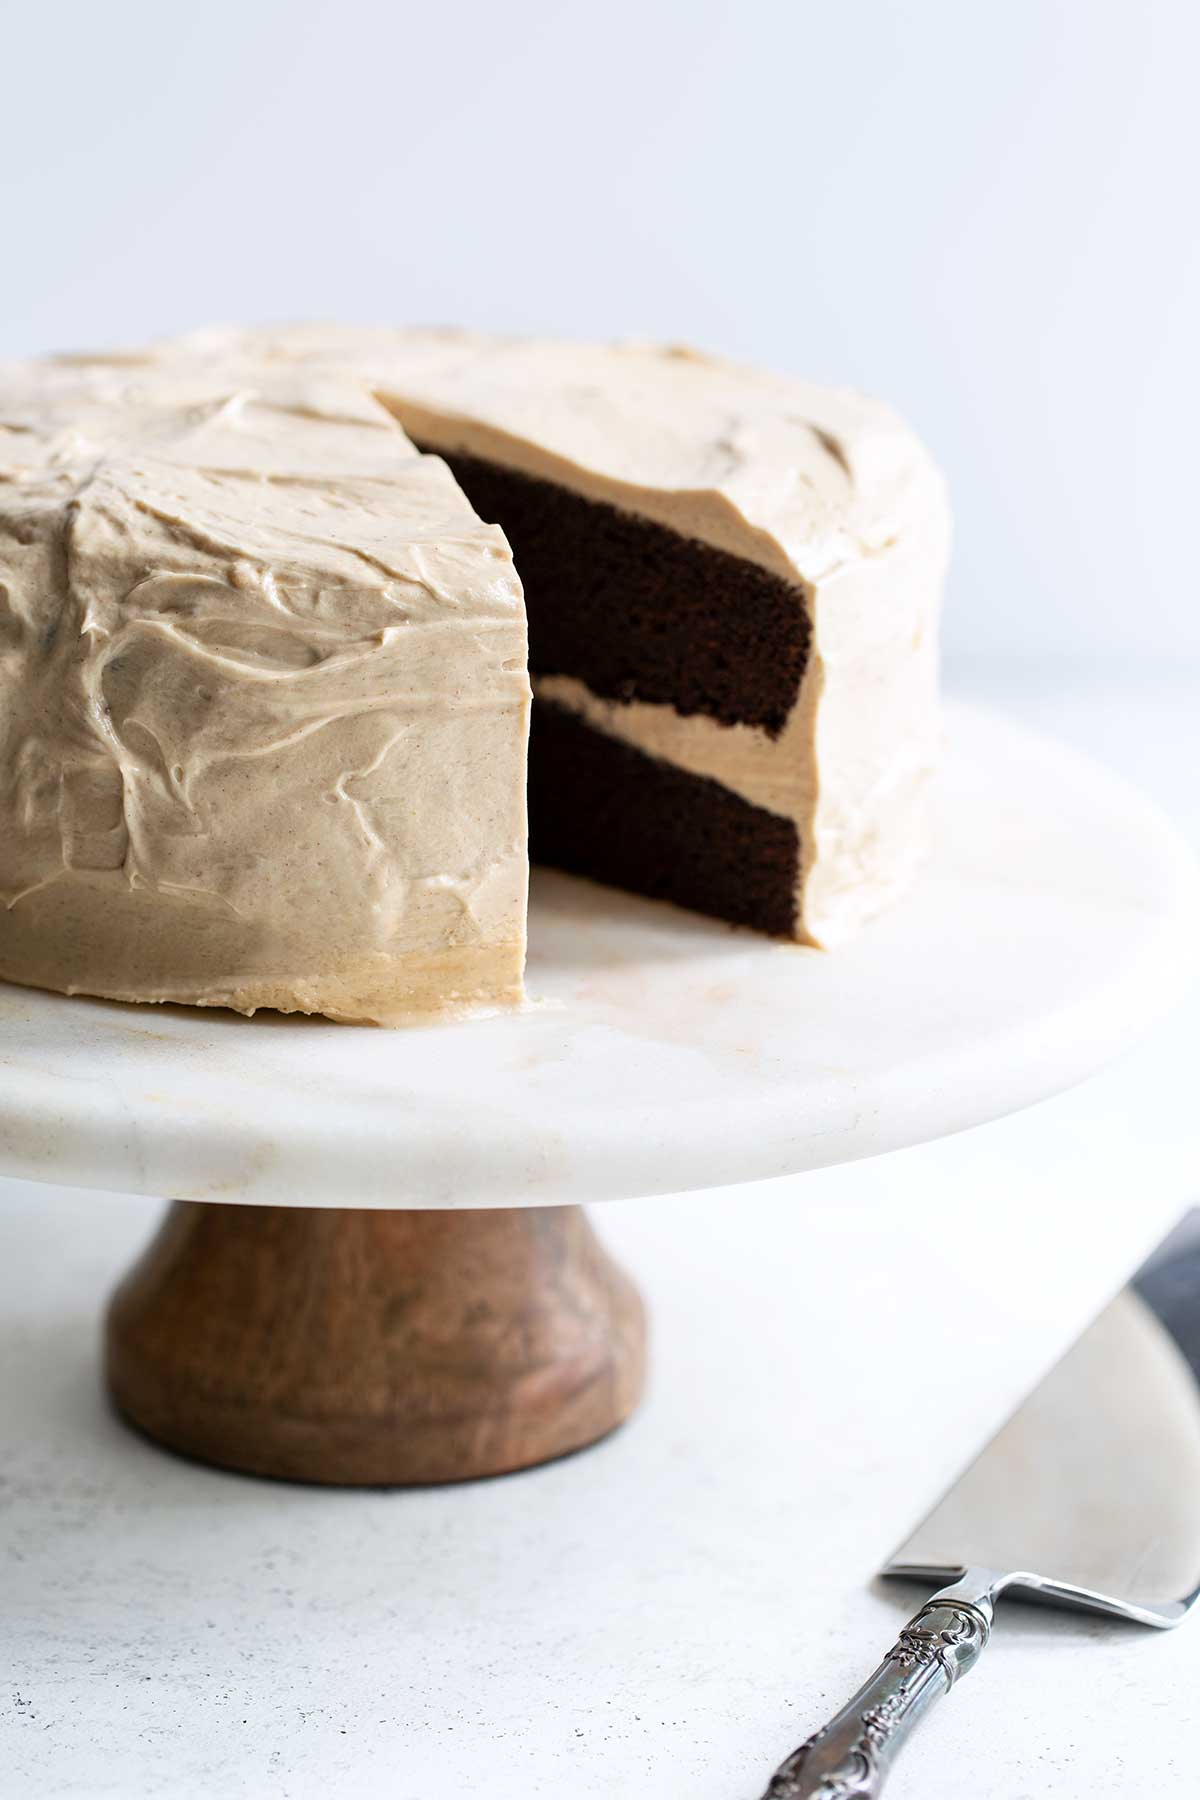 Layer cake on a cake stand with a slice missing